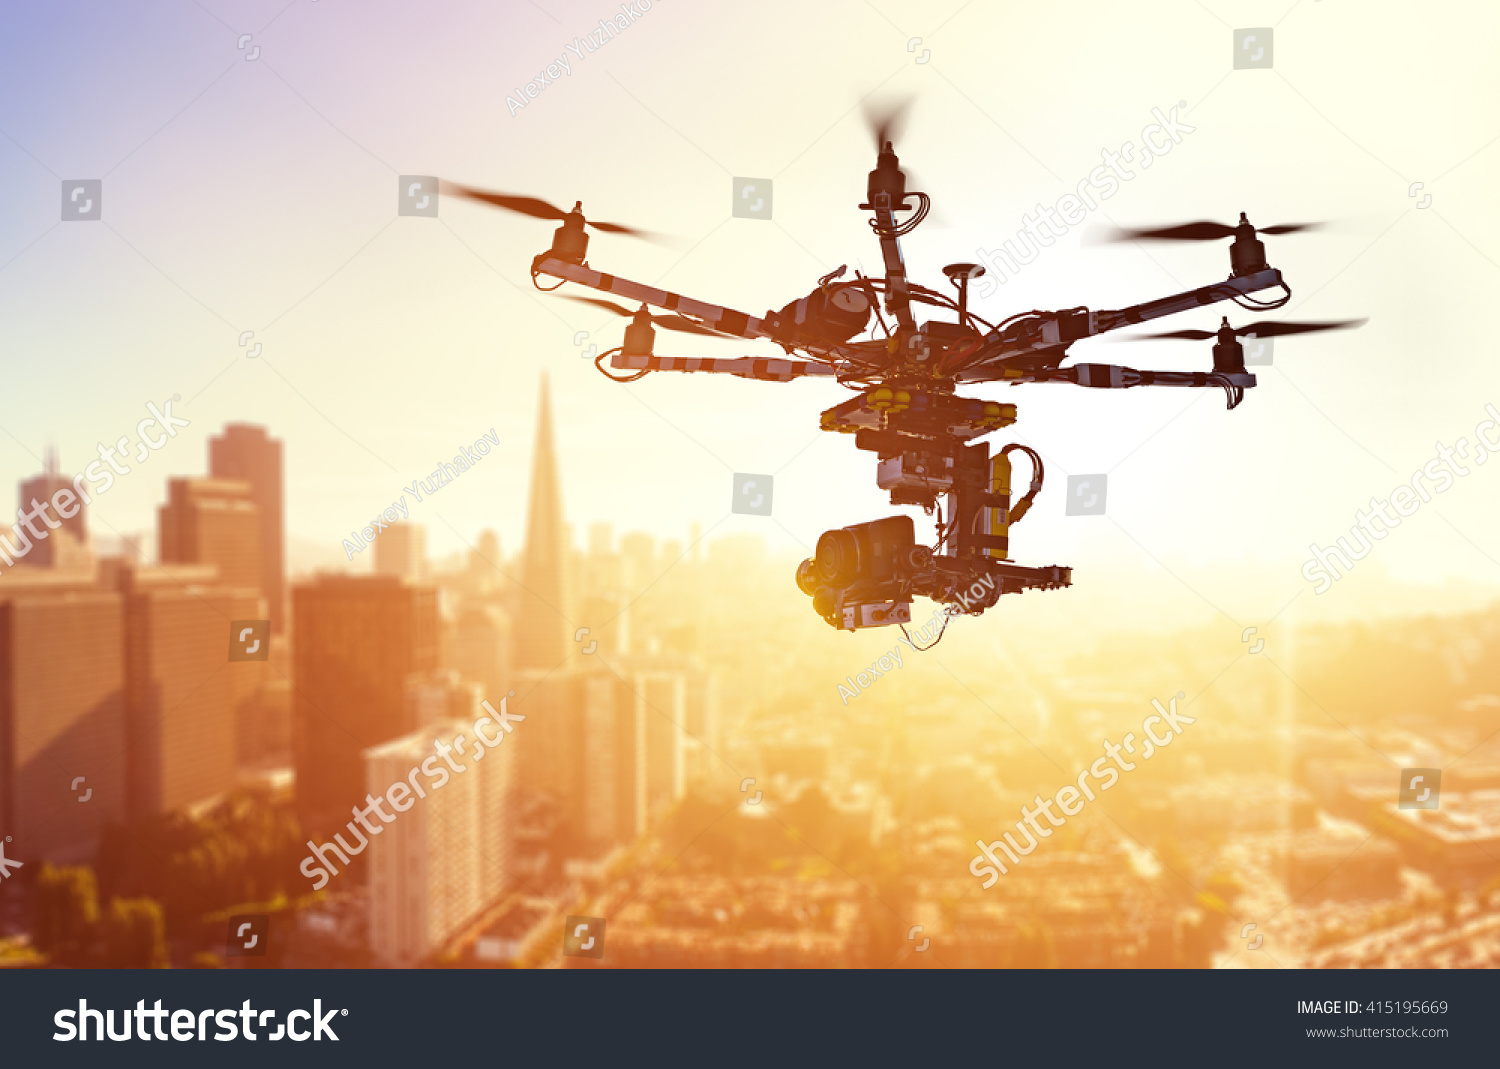 wireless remote control helicopter with Innovation Photography Concept Silhouette Drone Flying 415195669 on Watch further Royalty Free Stock Photo Camera Aerial Photography Sky Video Photo Productions Image35324155 as well Innovation Photography Concept Silhouette Drone Flying 415195669 further Capstone as well 36485.